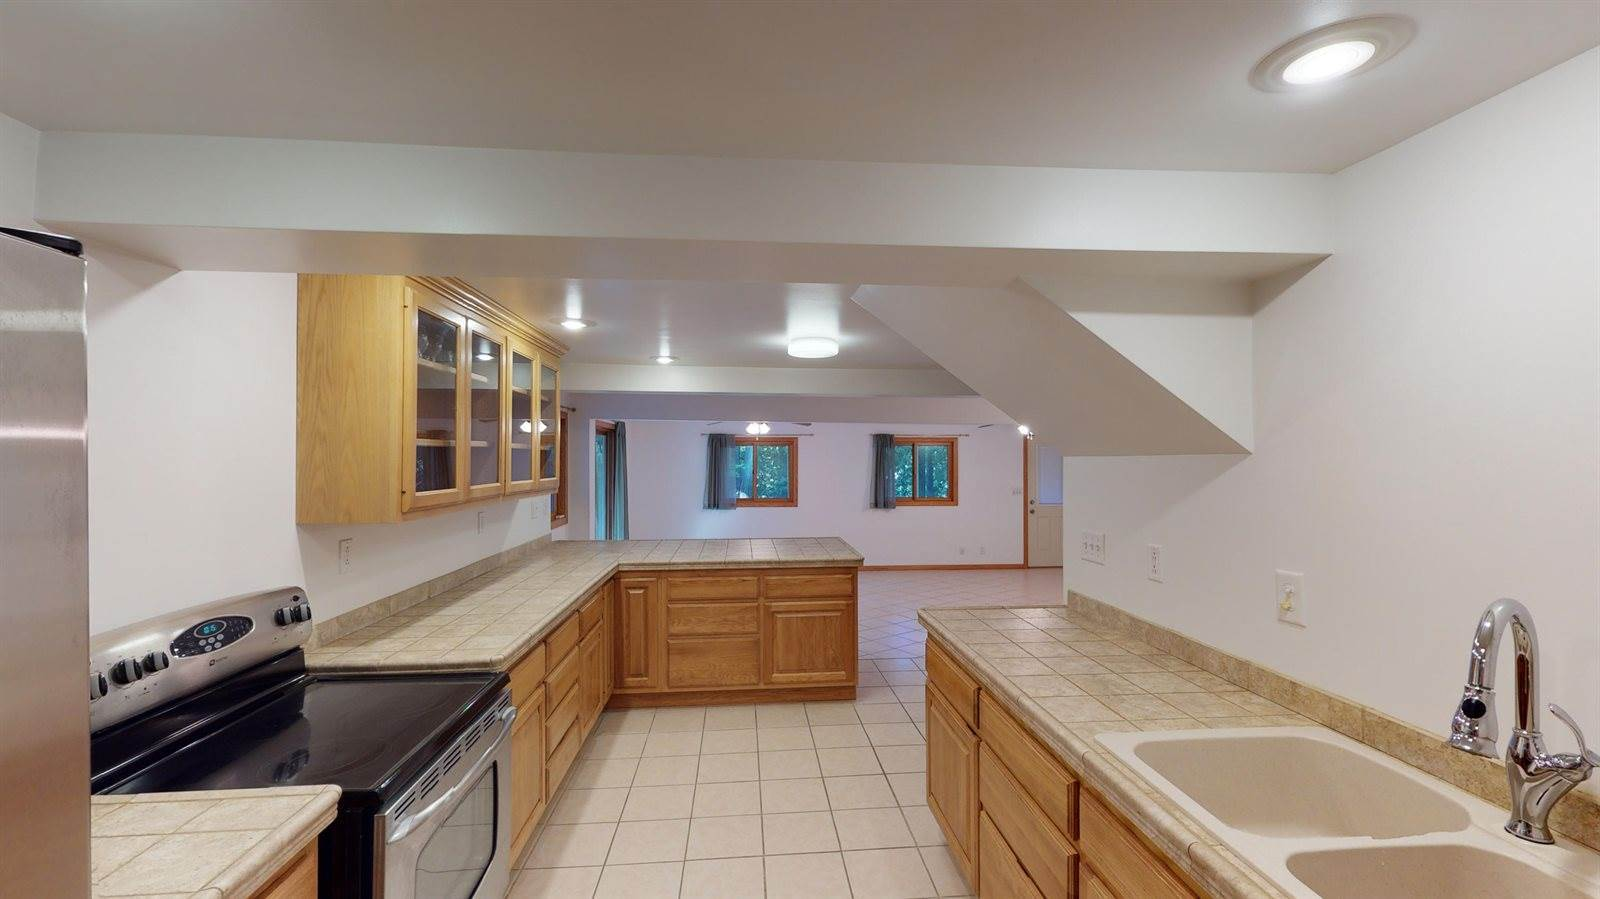 N7816 East Lakeshore Dr, Whitewater, WI 53190